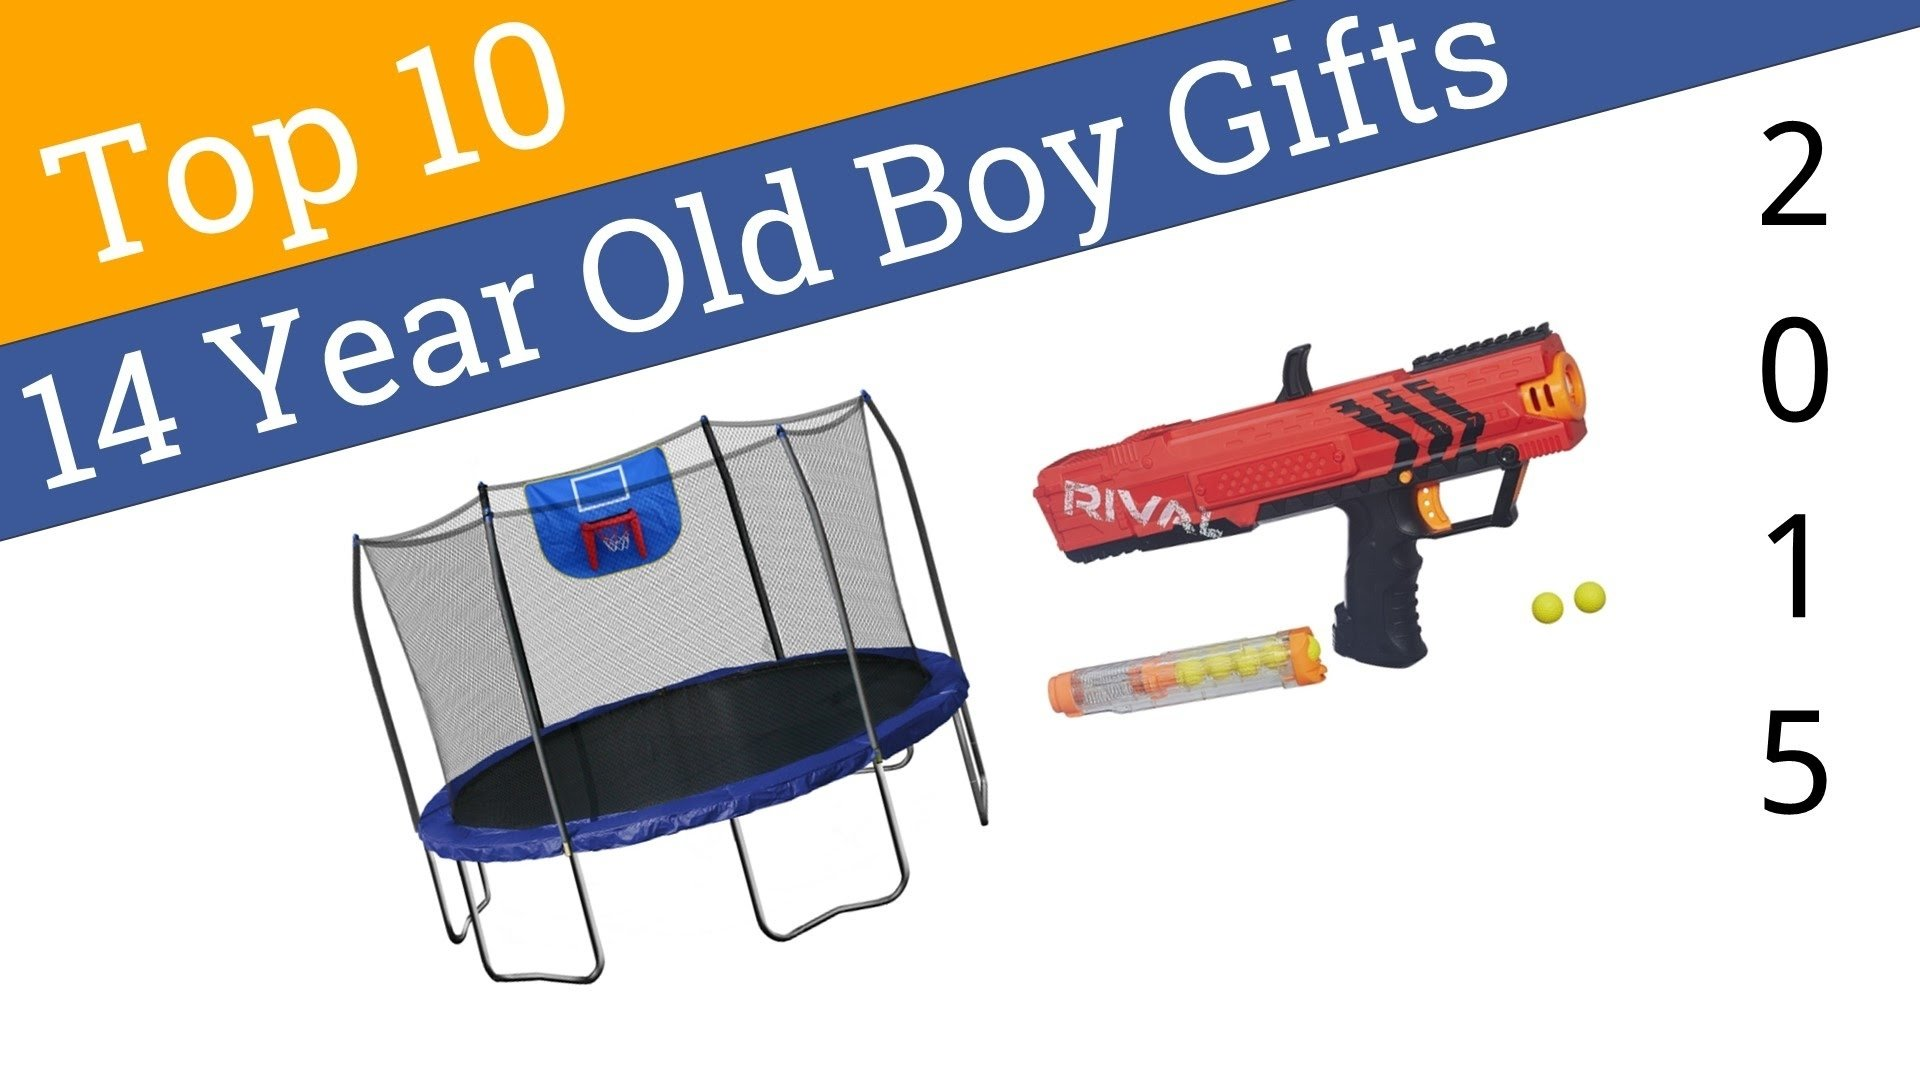 10 Famous 13 Year Old Boy Christmas Ideas 10 best 14 year old boy gifts 2015 youtube 5 2020